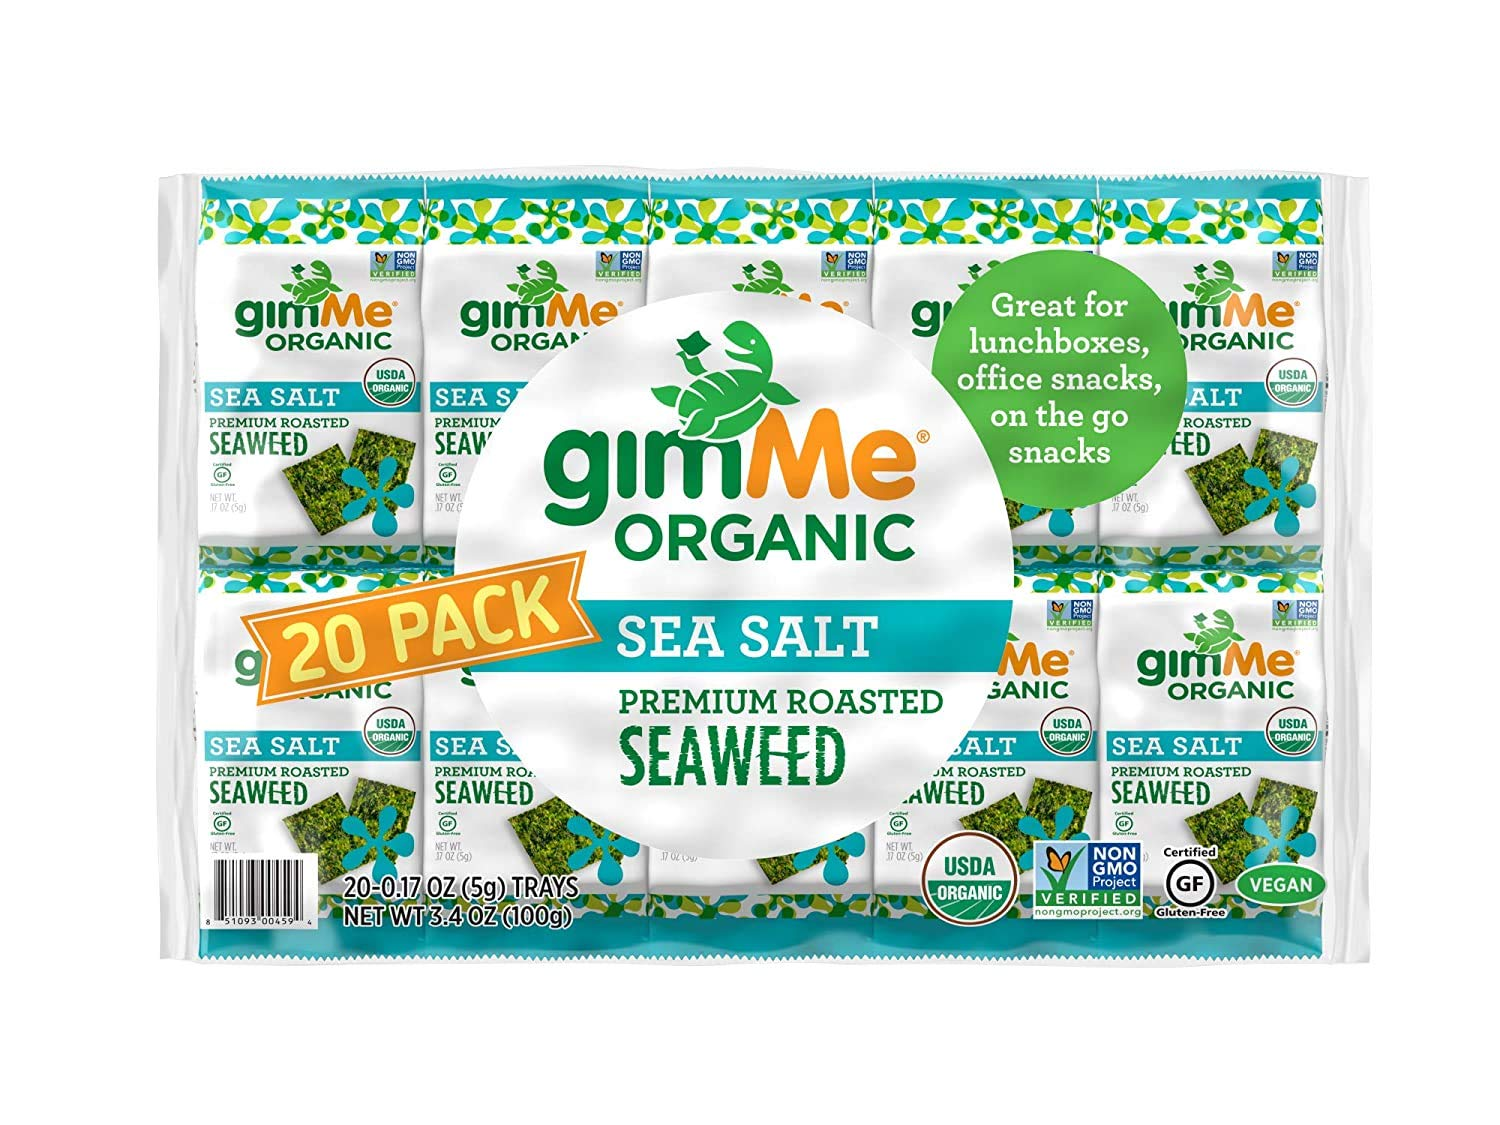 gimMe Organic Roasted Seaweed Sheets - Sea Salt - 20 Count - Keto, Vegan, Gluten Free - Great Source of Iodine and Omega 3's - Healthy On-The-Go Snack for Kids & Adults